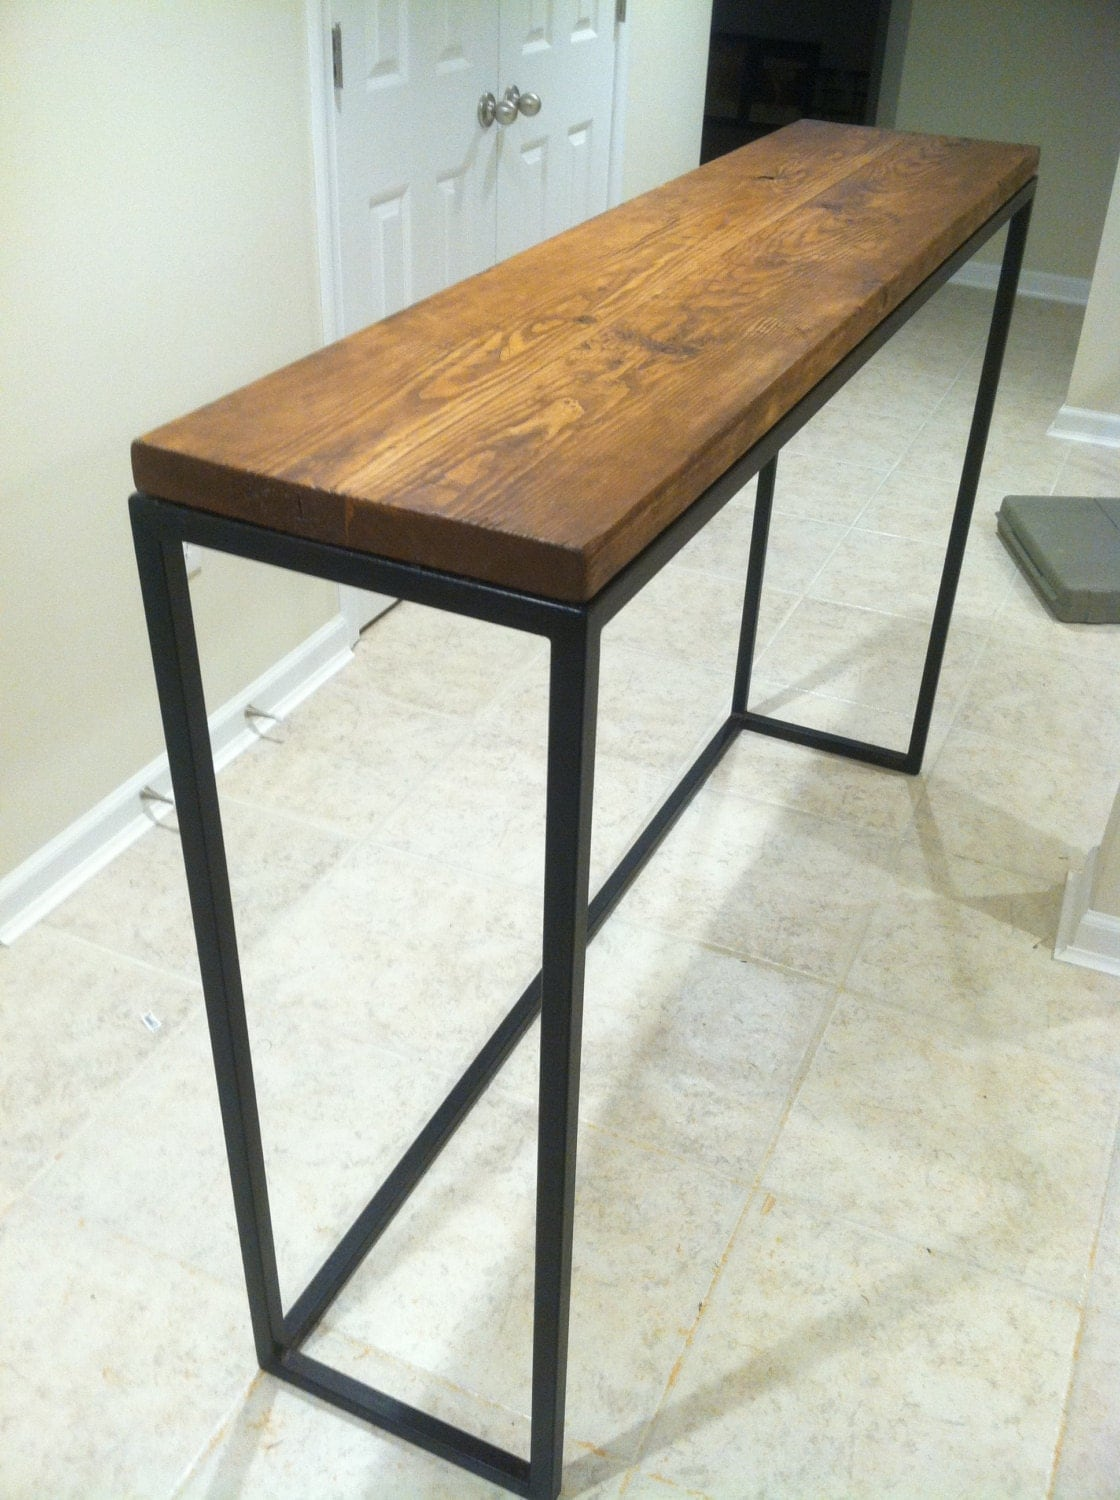 rustic reclaimed wood steel leg bar table by rustysplintermd. Black Bedroom Furniture Sets. Home Design Ideas